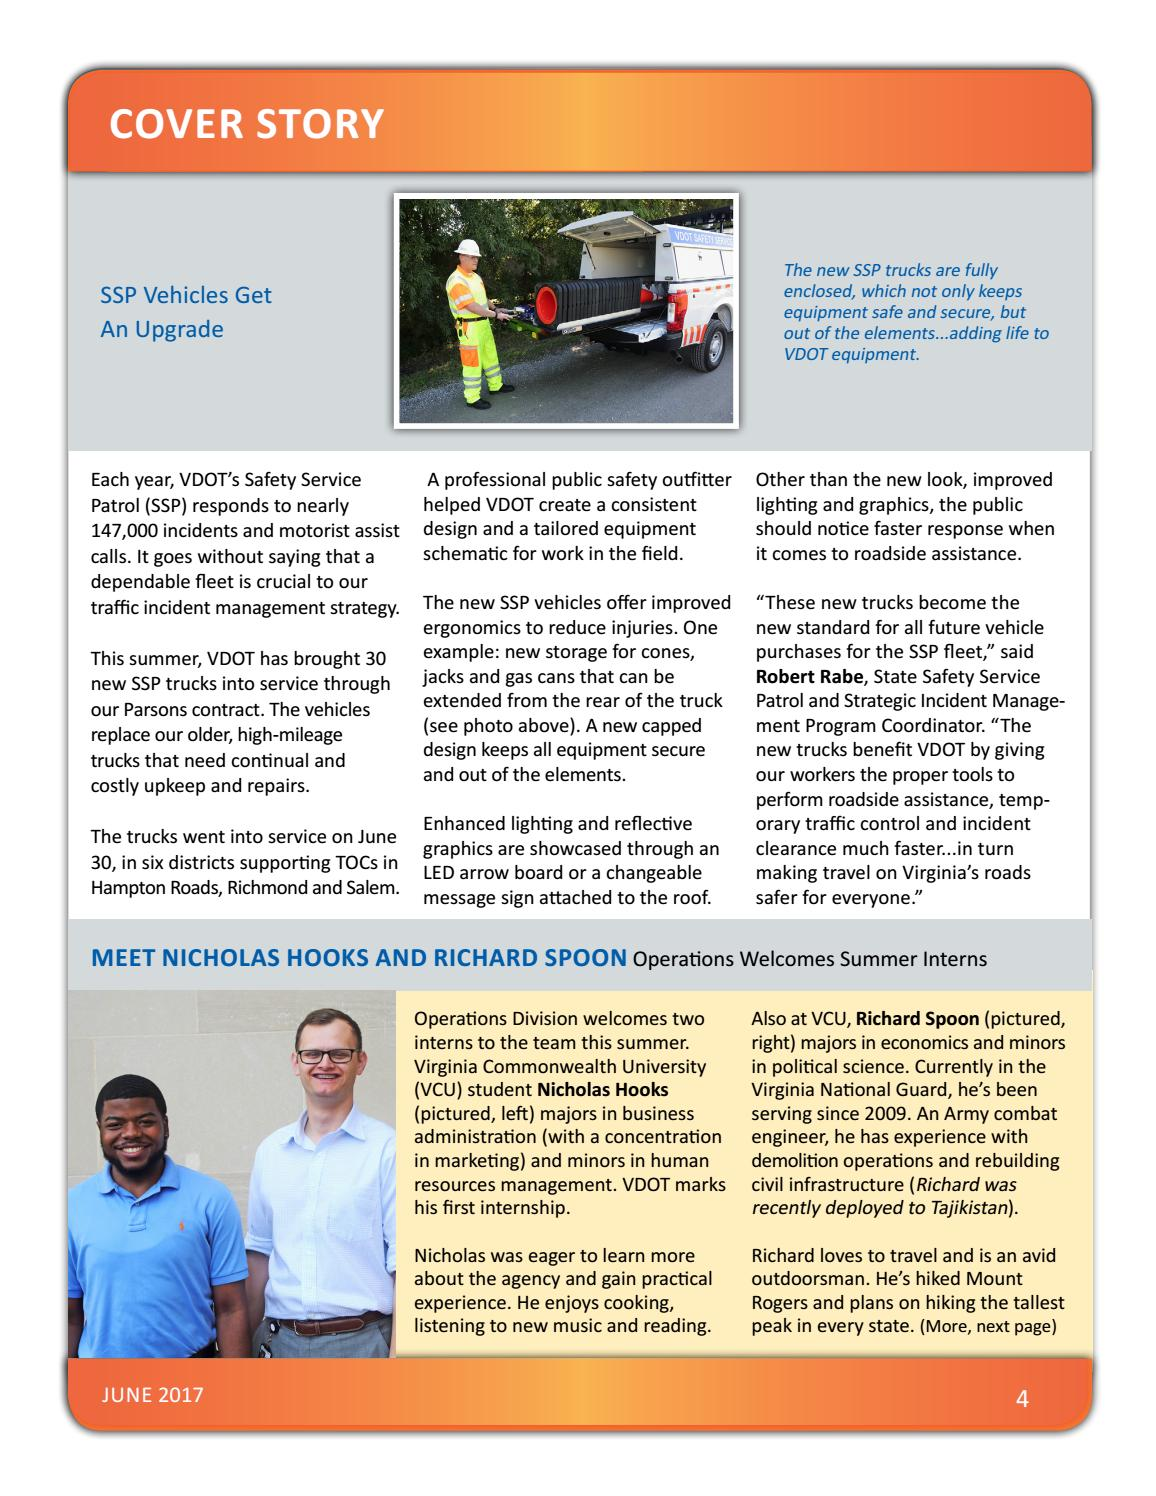 VDOT Operations Bulletin - June 2017 by VDOT Operations - issuu